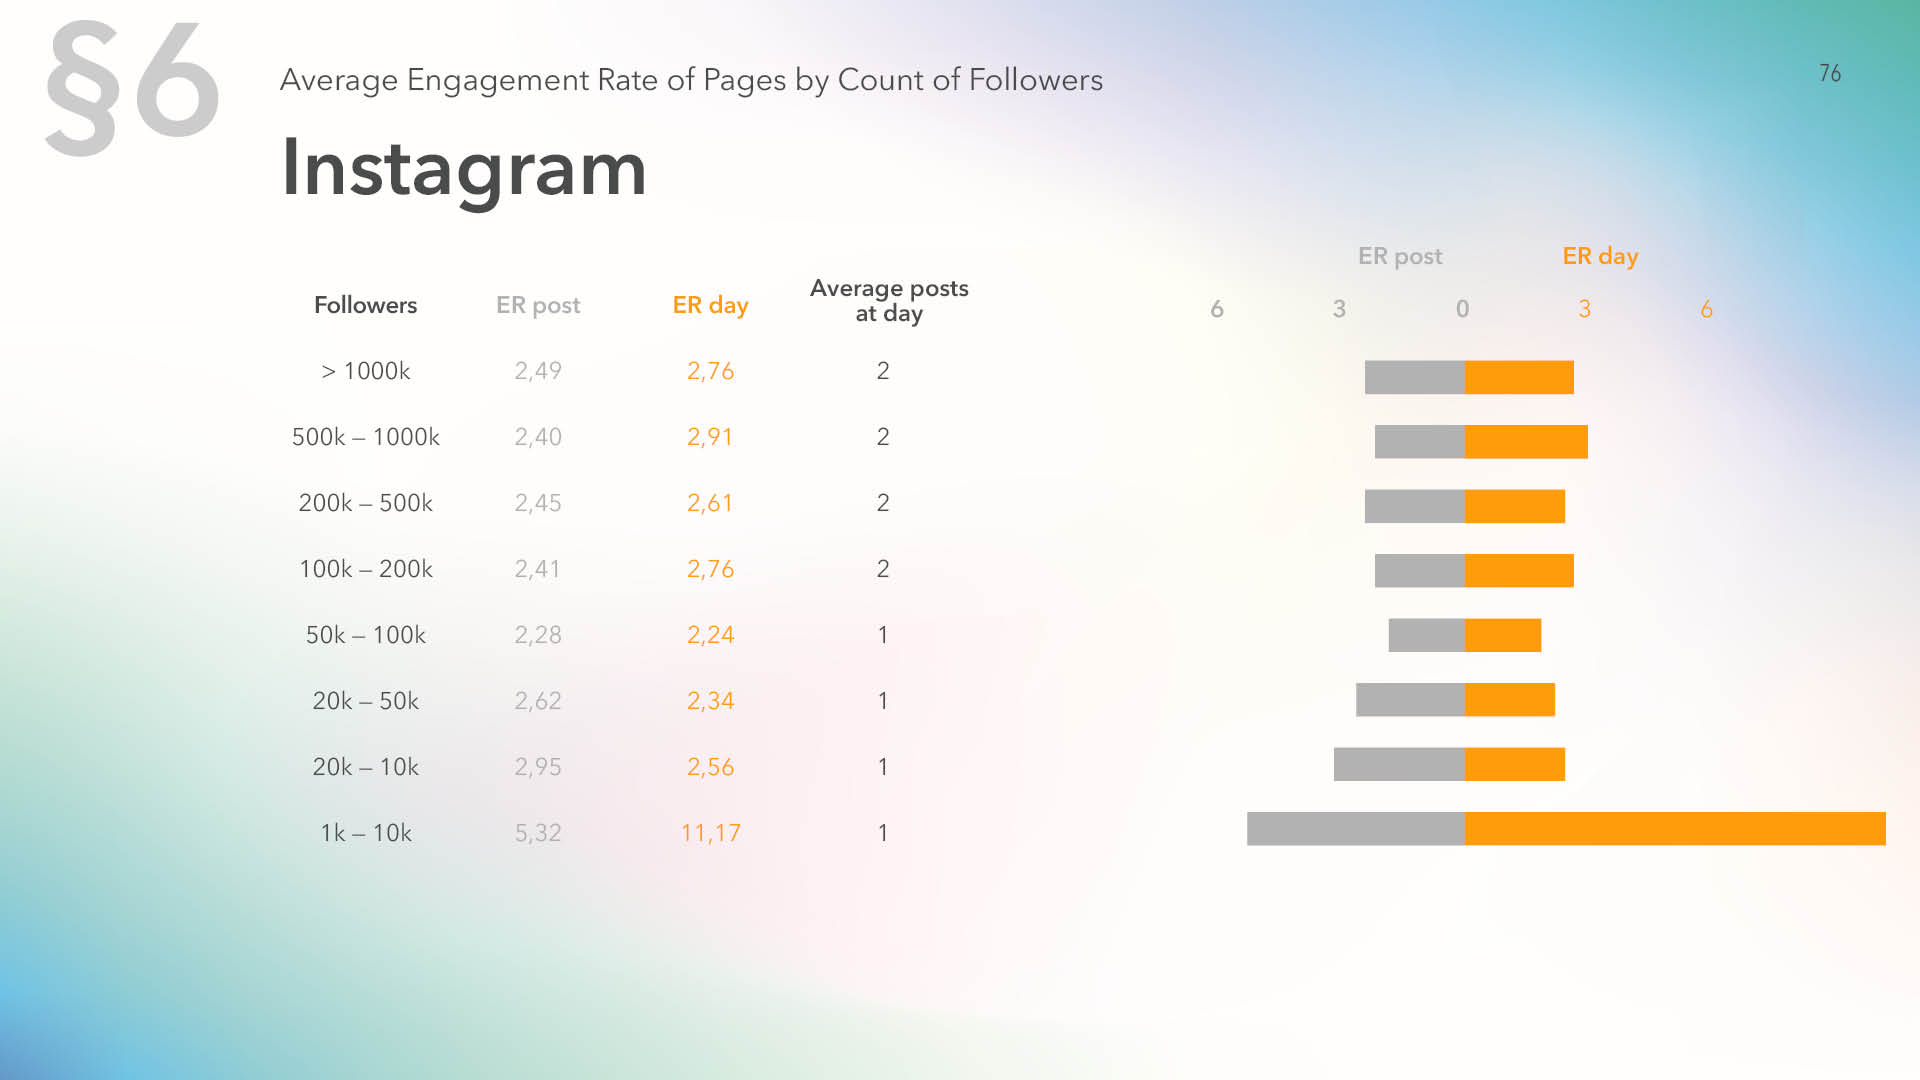 Average engagement rate of Instagram pages by count of followers